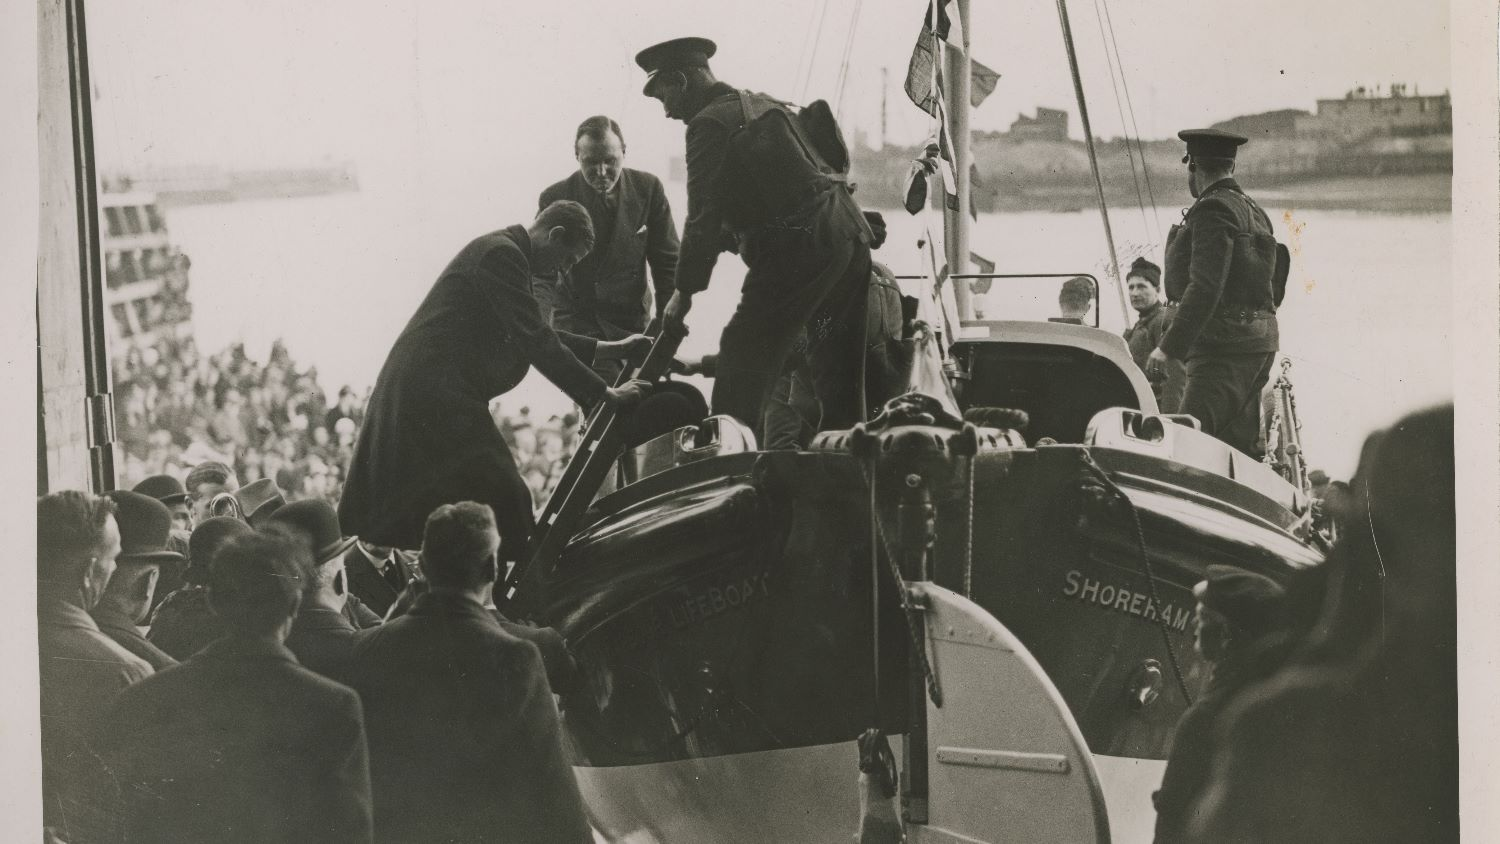 Black and white image of Prince George climbing into lifeboat at opening of Shoreham lifeboat station